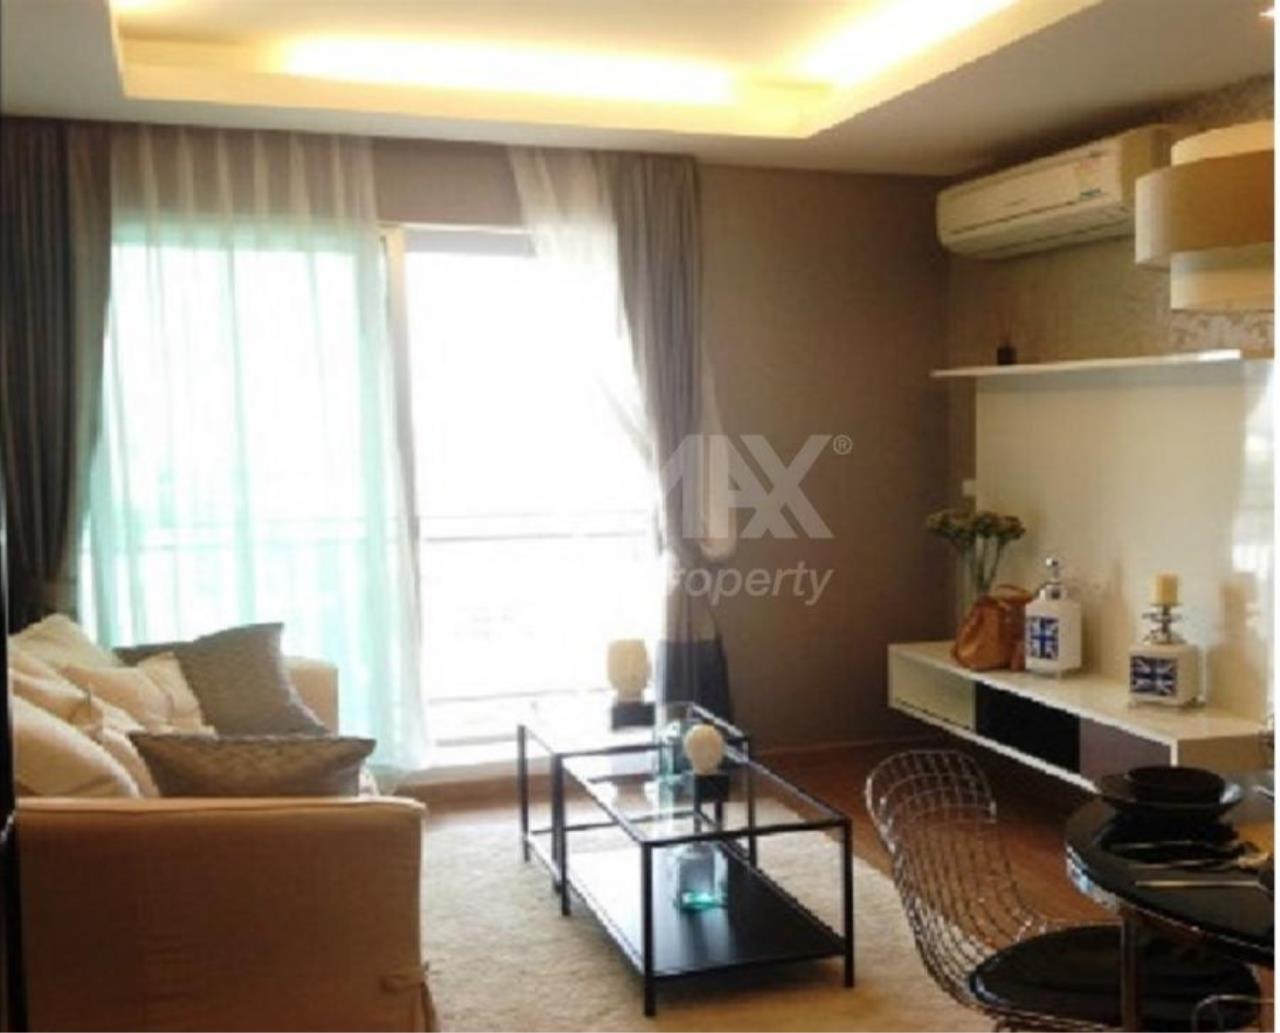 RE/MAX LifeStyle Property Agency's Thru Thonglor 1